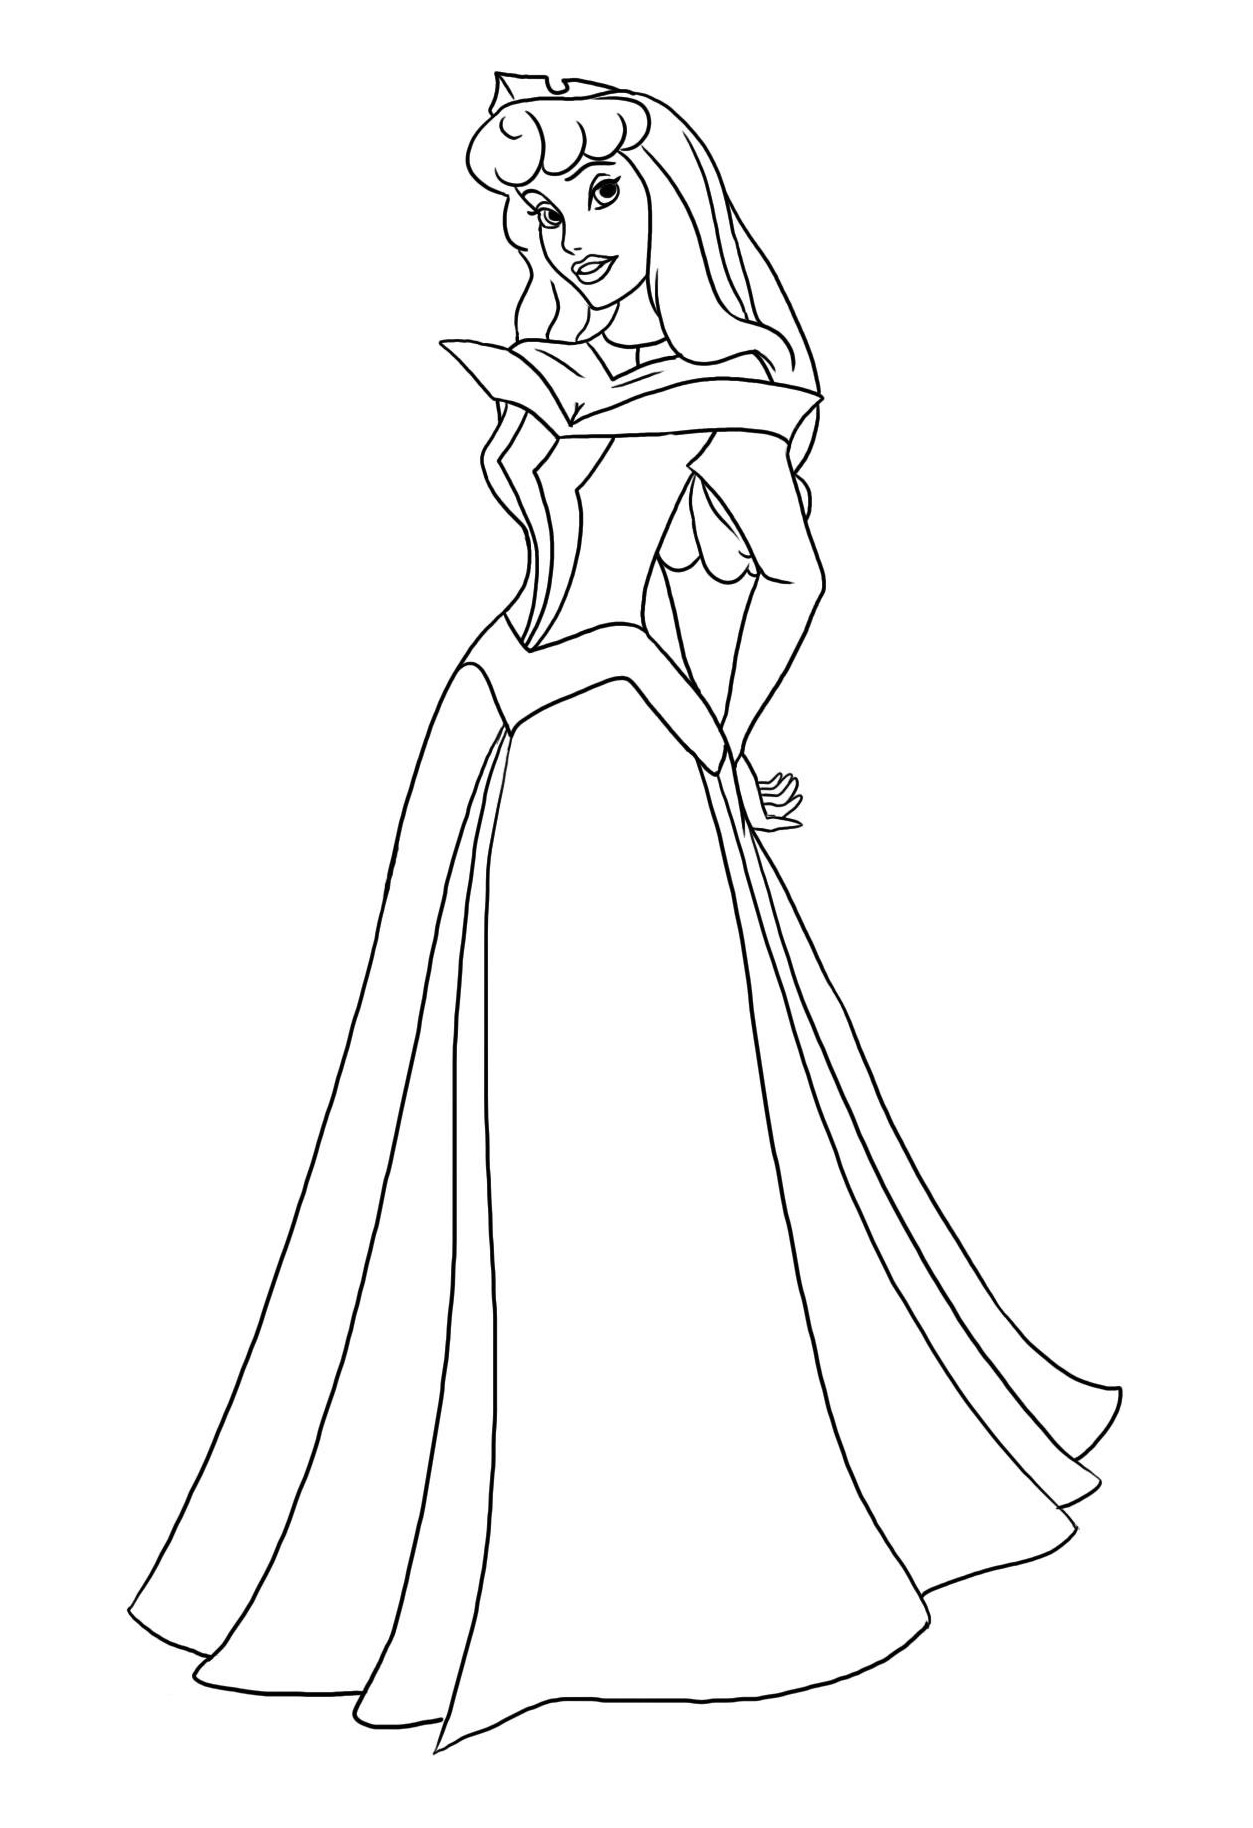 Sleeping beauty to print - Sleeping beauty Kids Coloring Pages